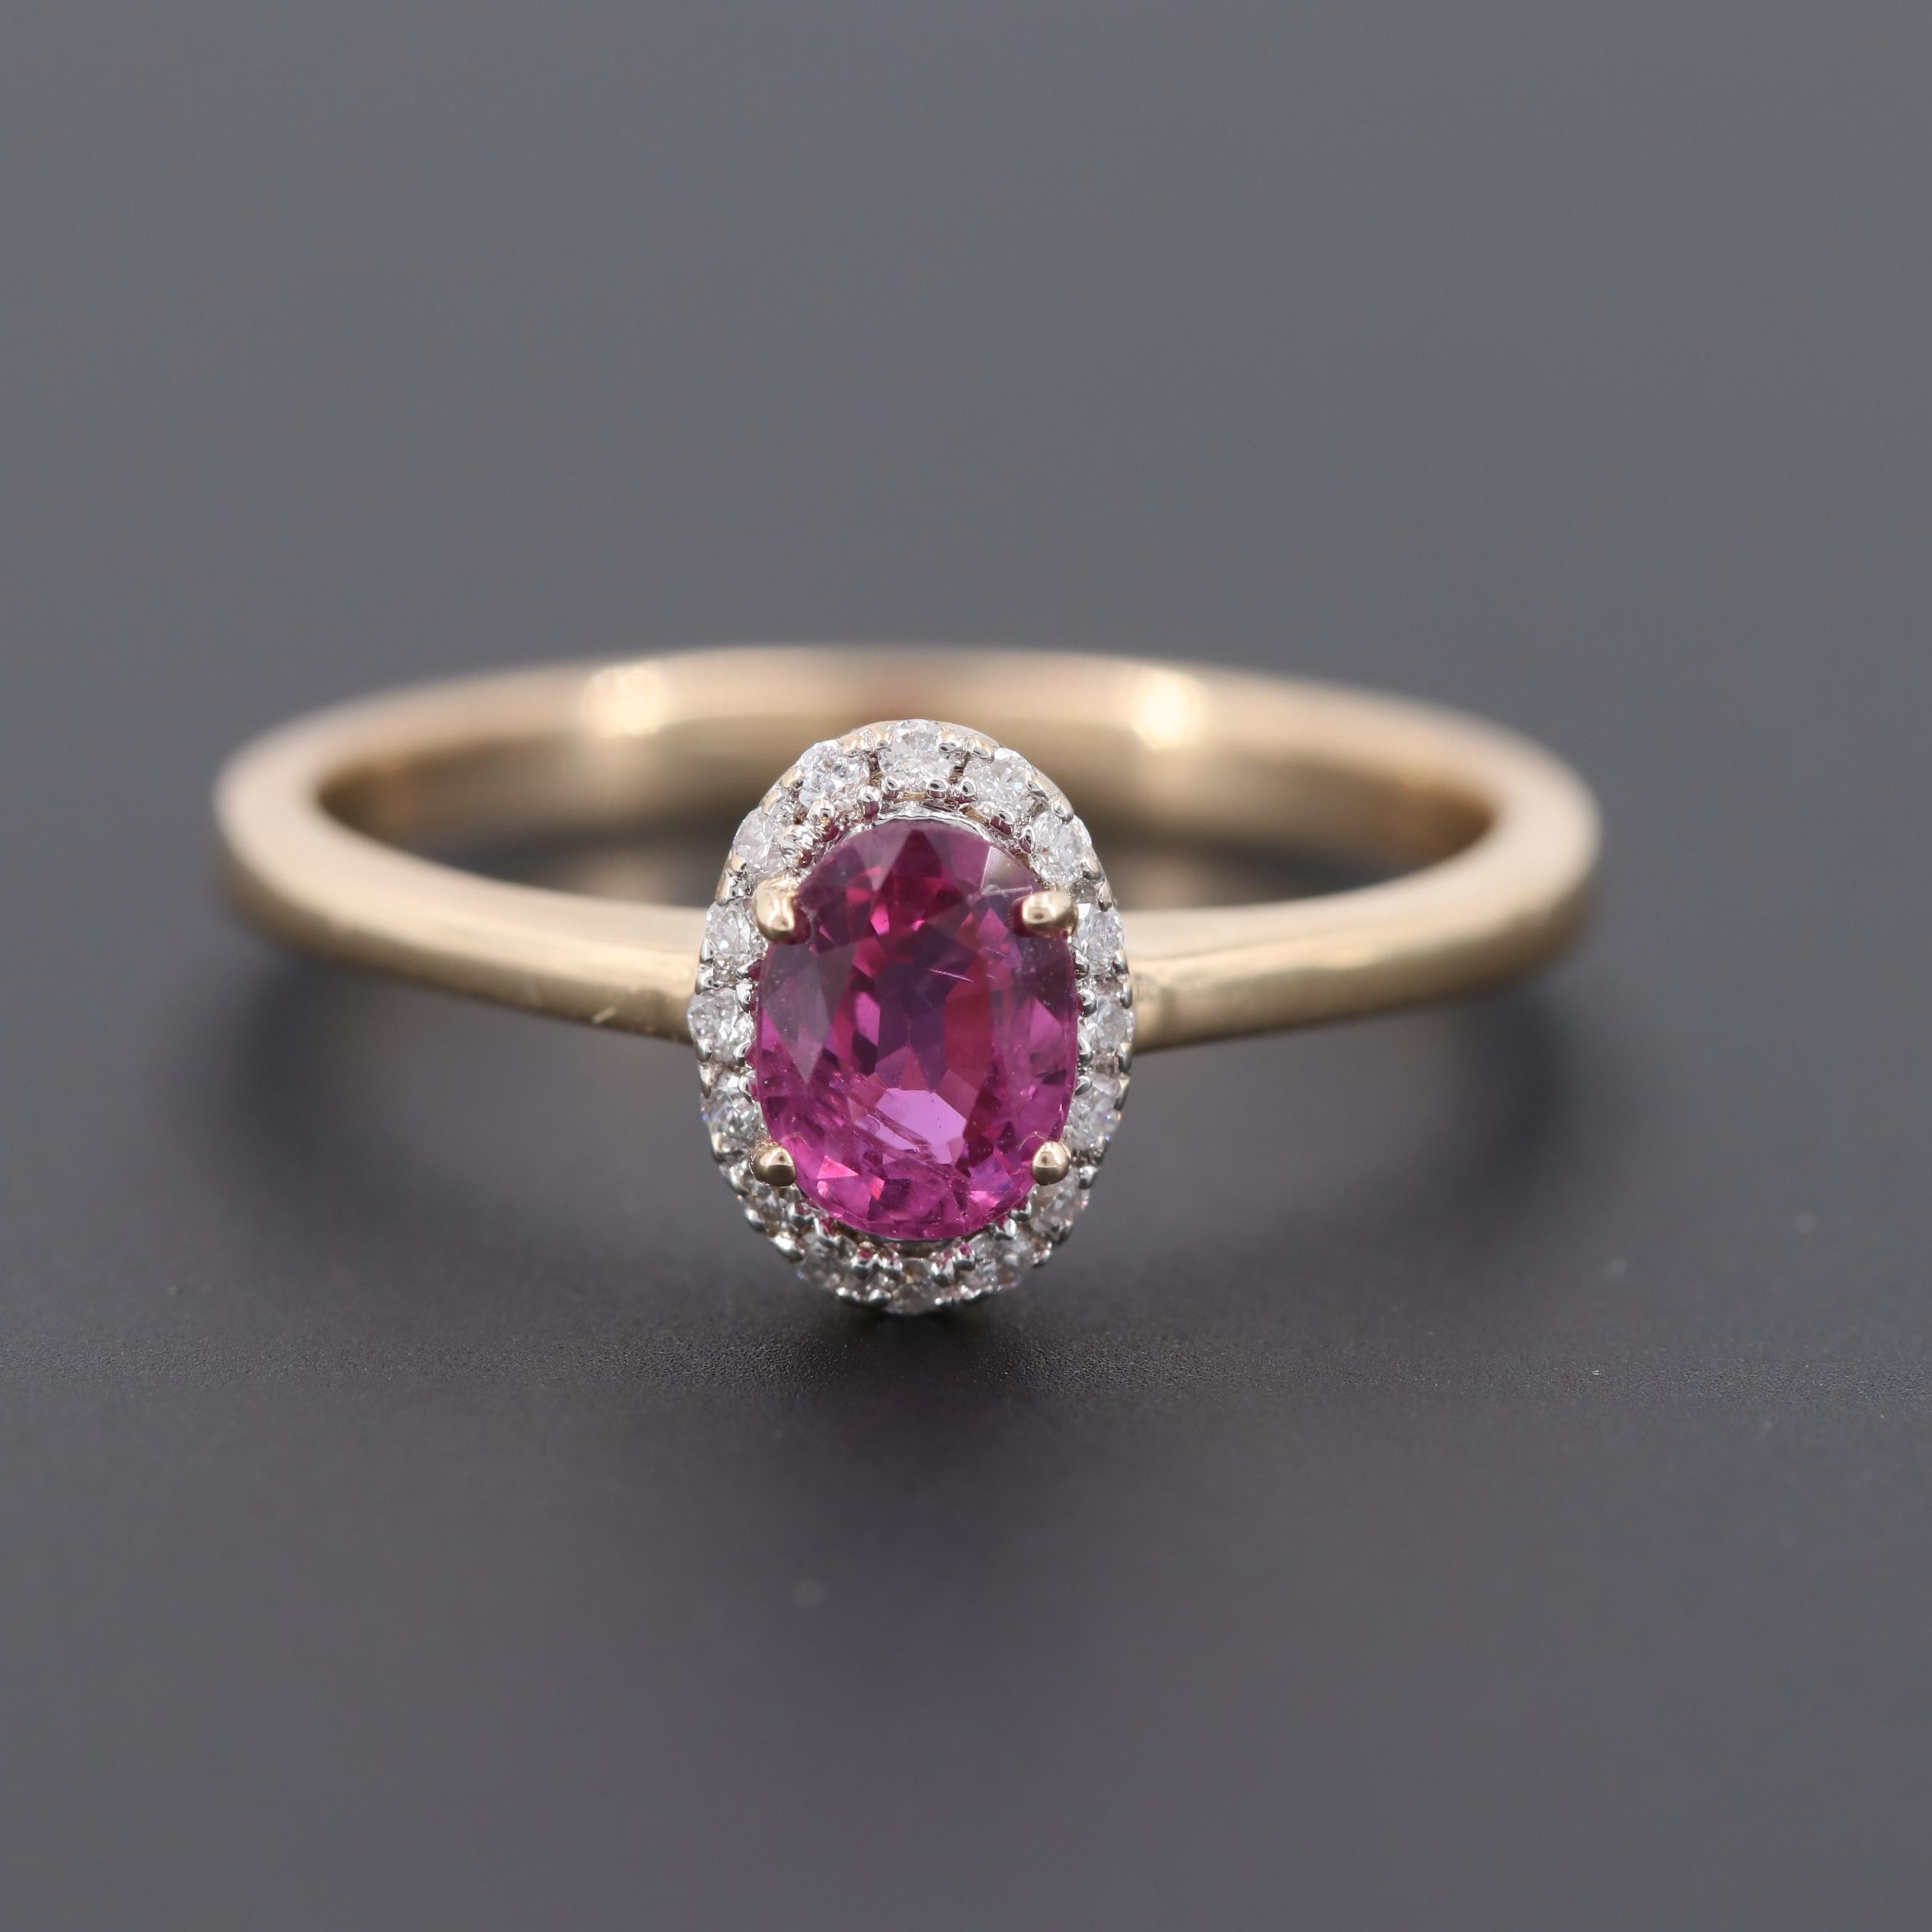 14K Yellow Gold Pink Sapphire Ring with Diamond Halo